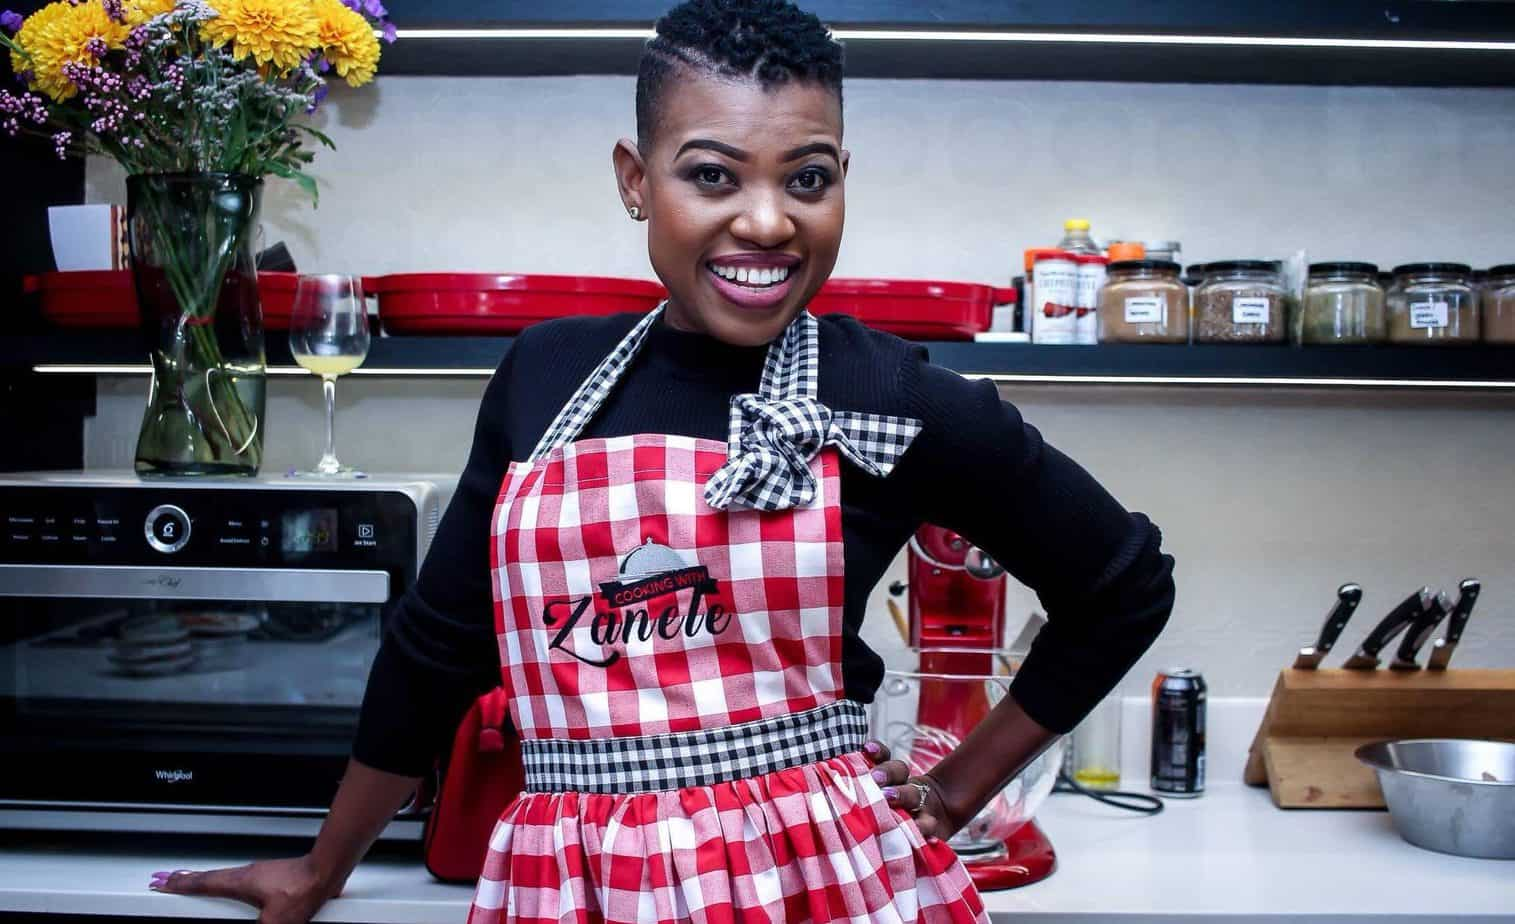 Chef and author Zanele Van Zyl self-published her first cook book in October 2018.